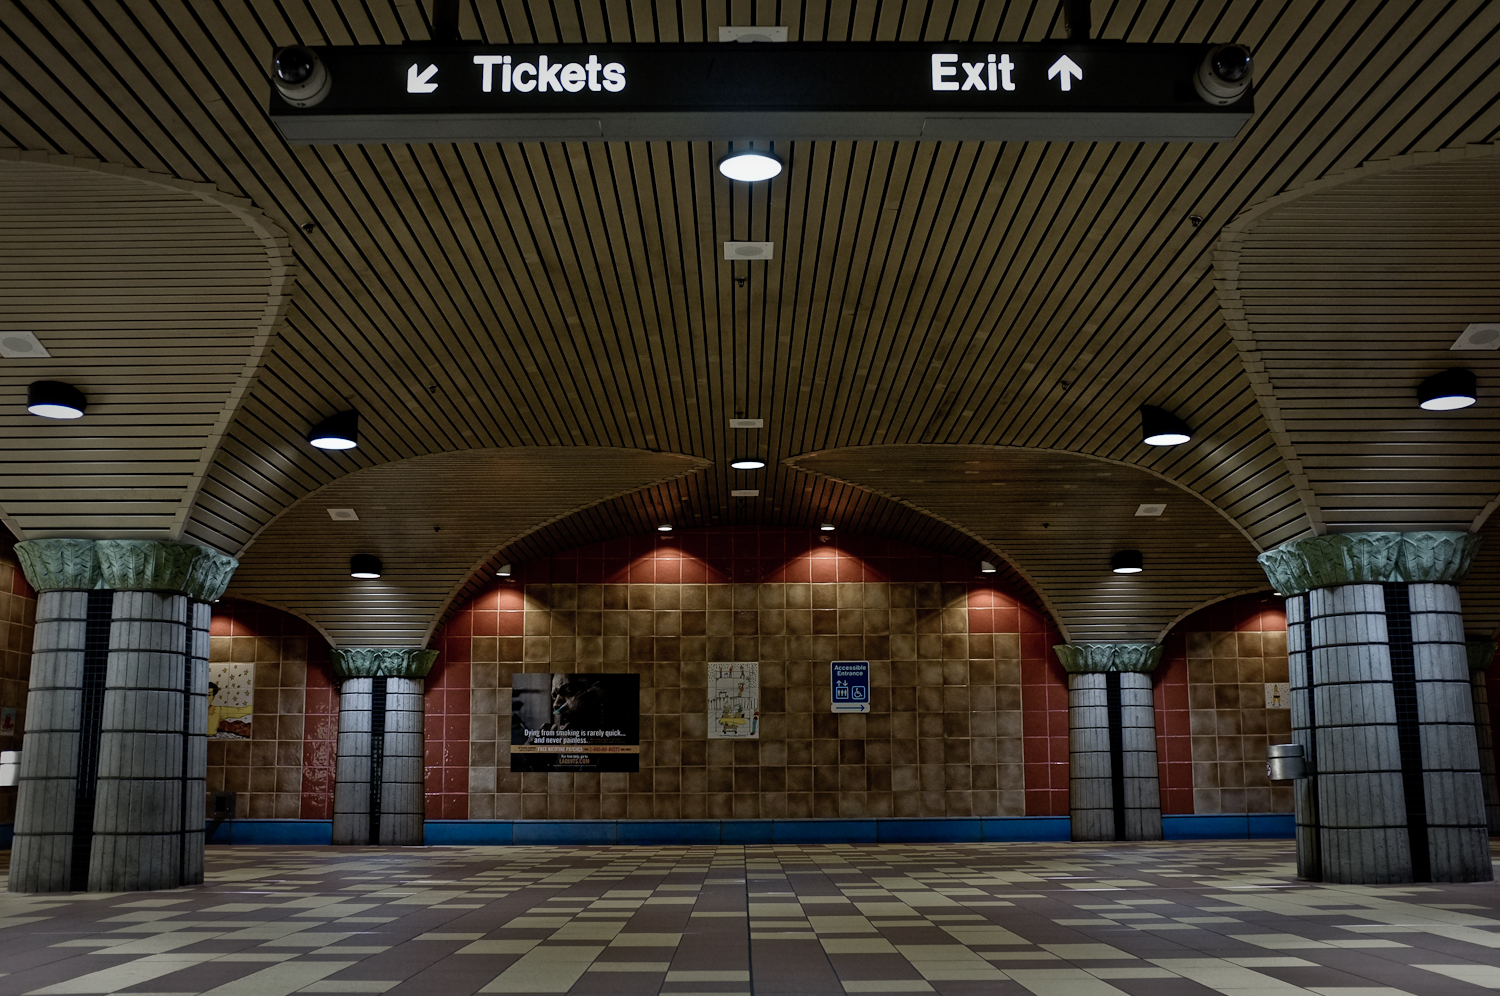 Shot at the Hollywood and Vine Metro station in Los Angeles.